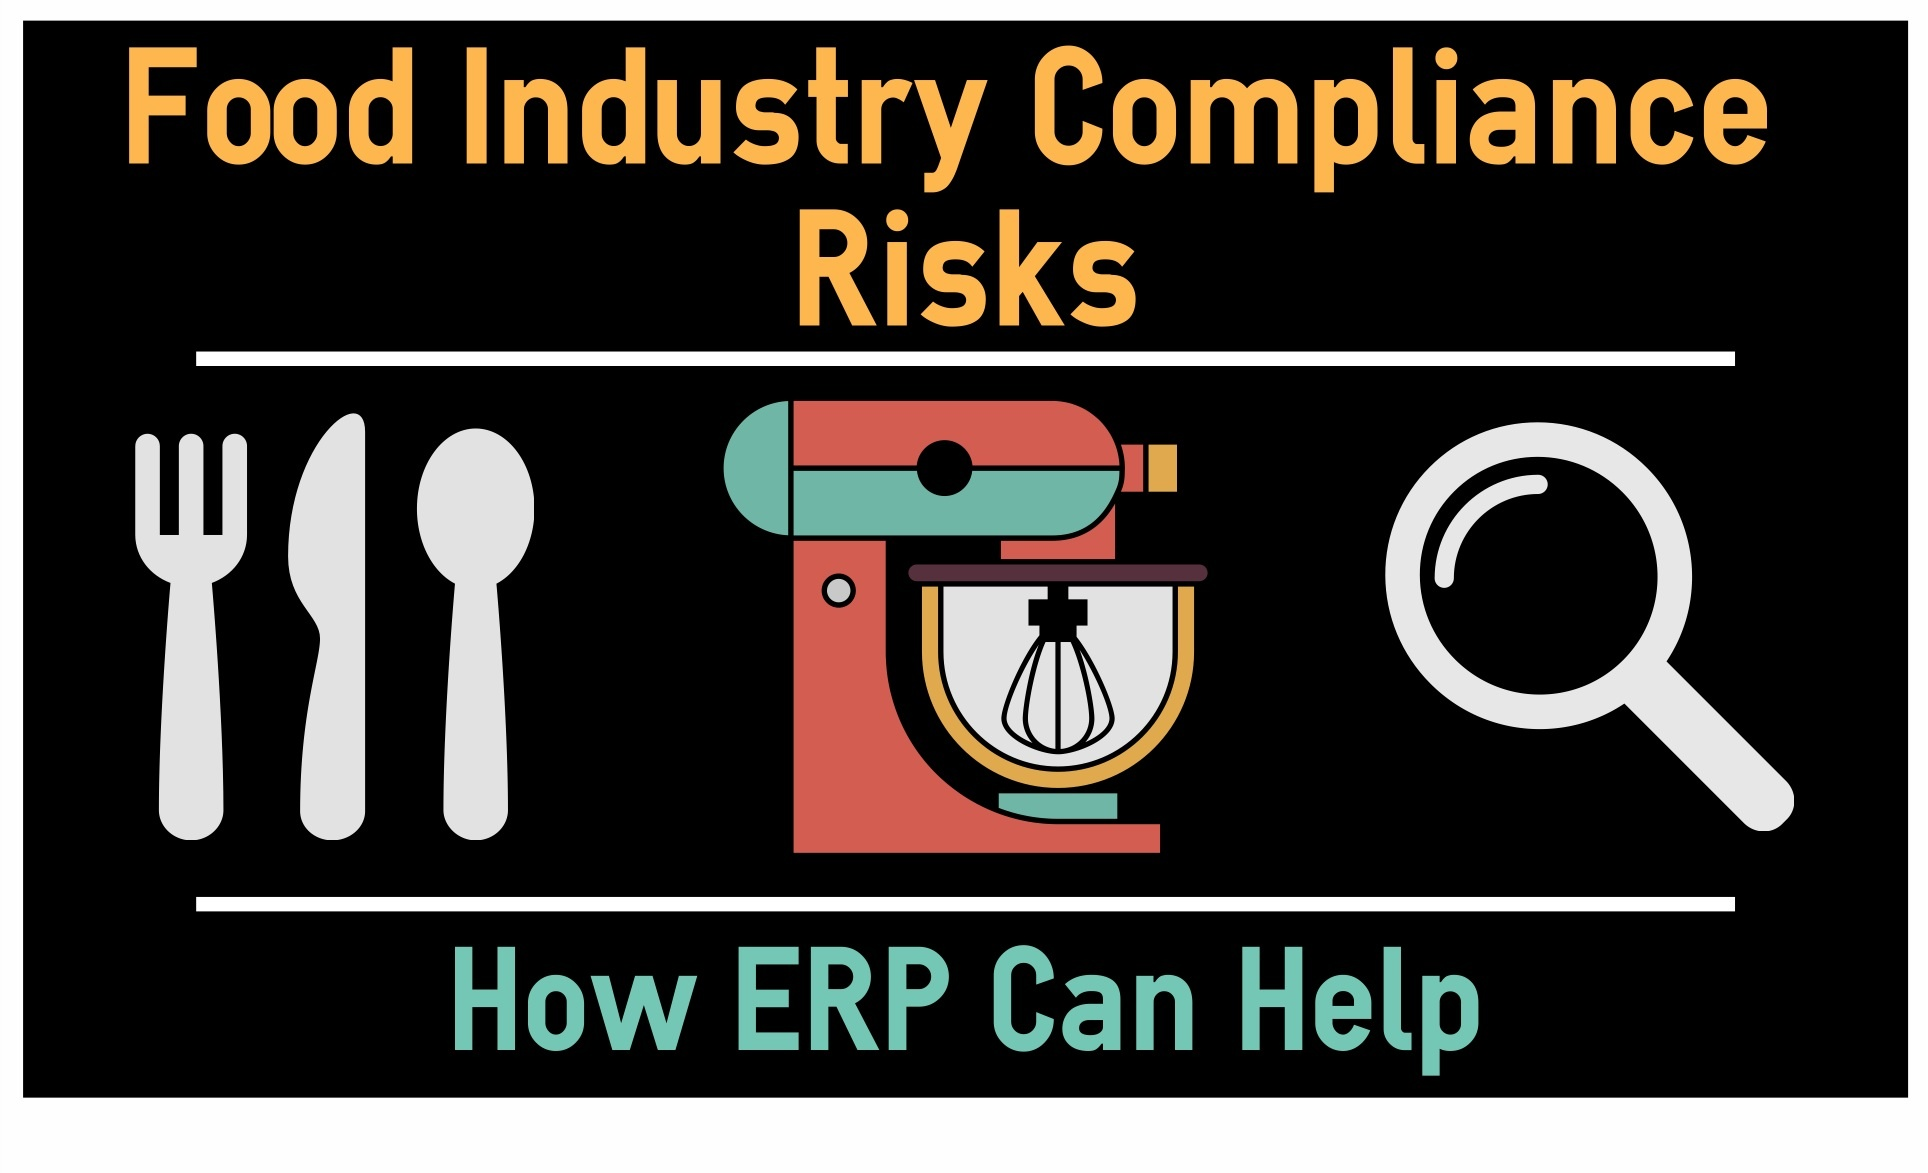 Food Industry Compliance Risks